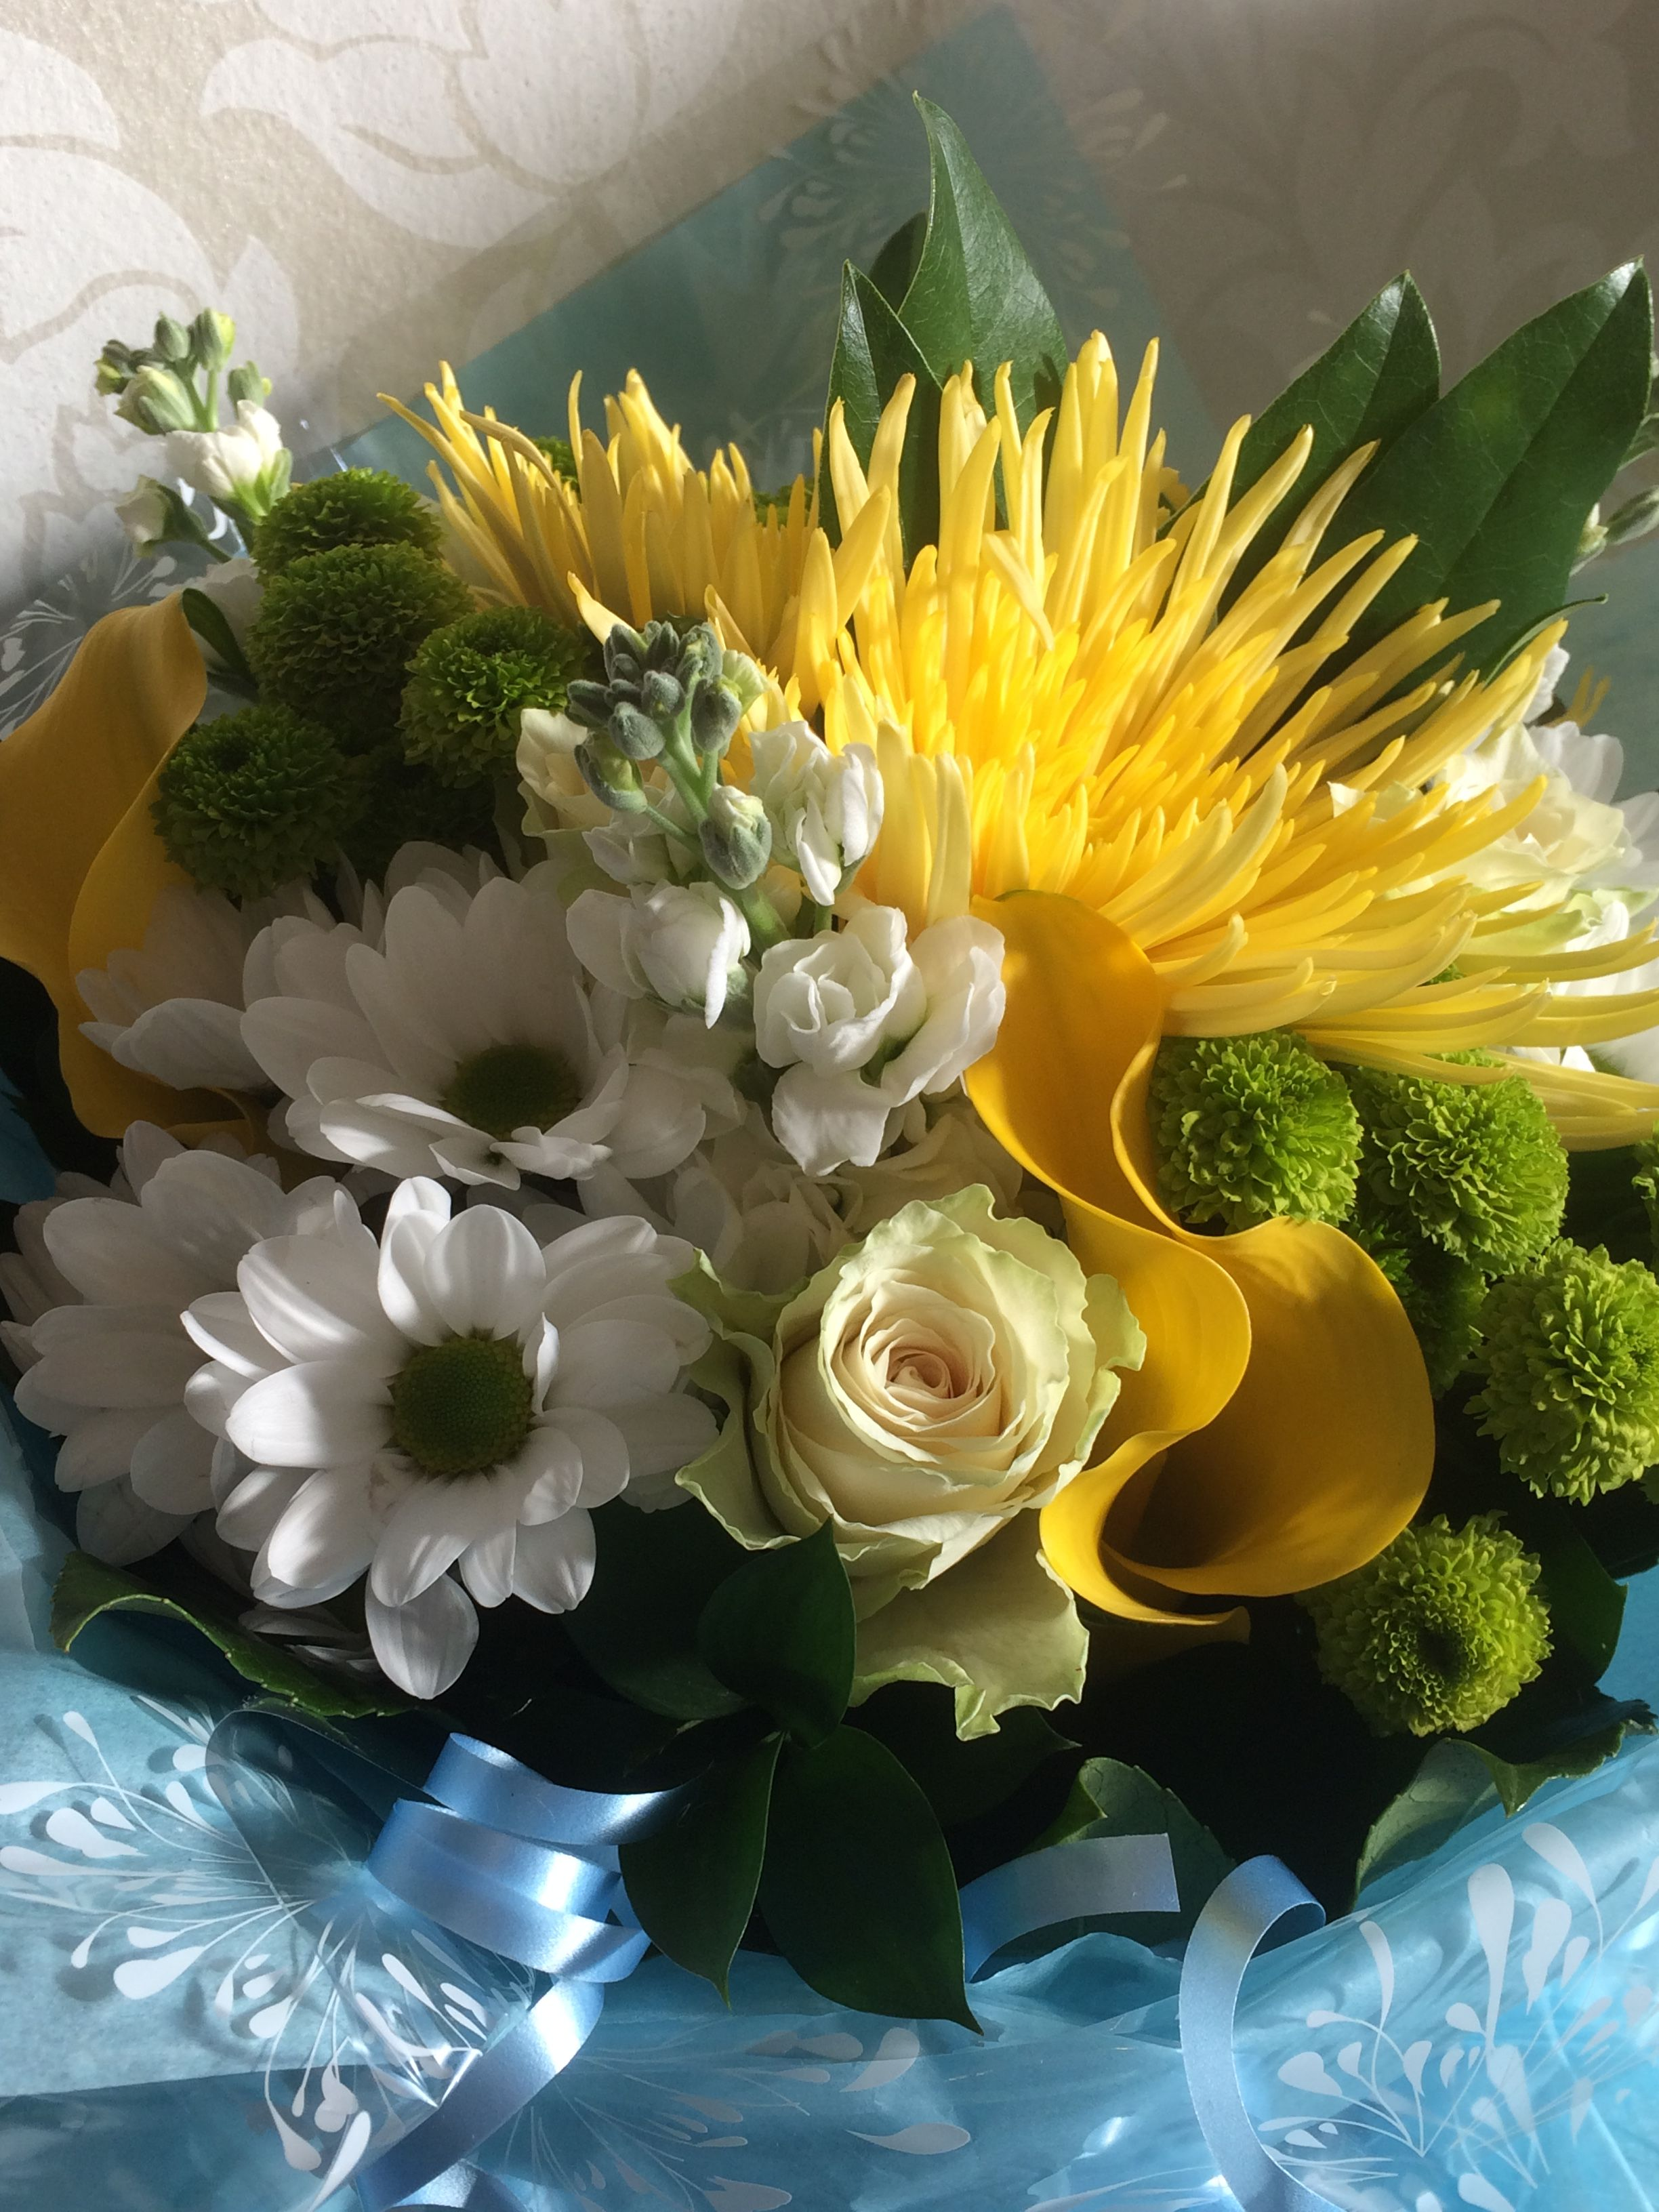 New baby boy gift bouquet of fresh flowers created by willow house willow house flowers aylesbury florist free same day delivery in aylesbury bucks local on line florist for next day local delivery flowers bouquets izmirmasajfo